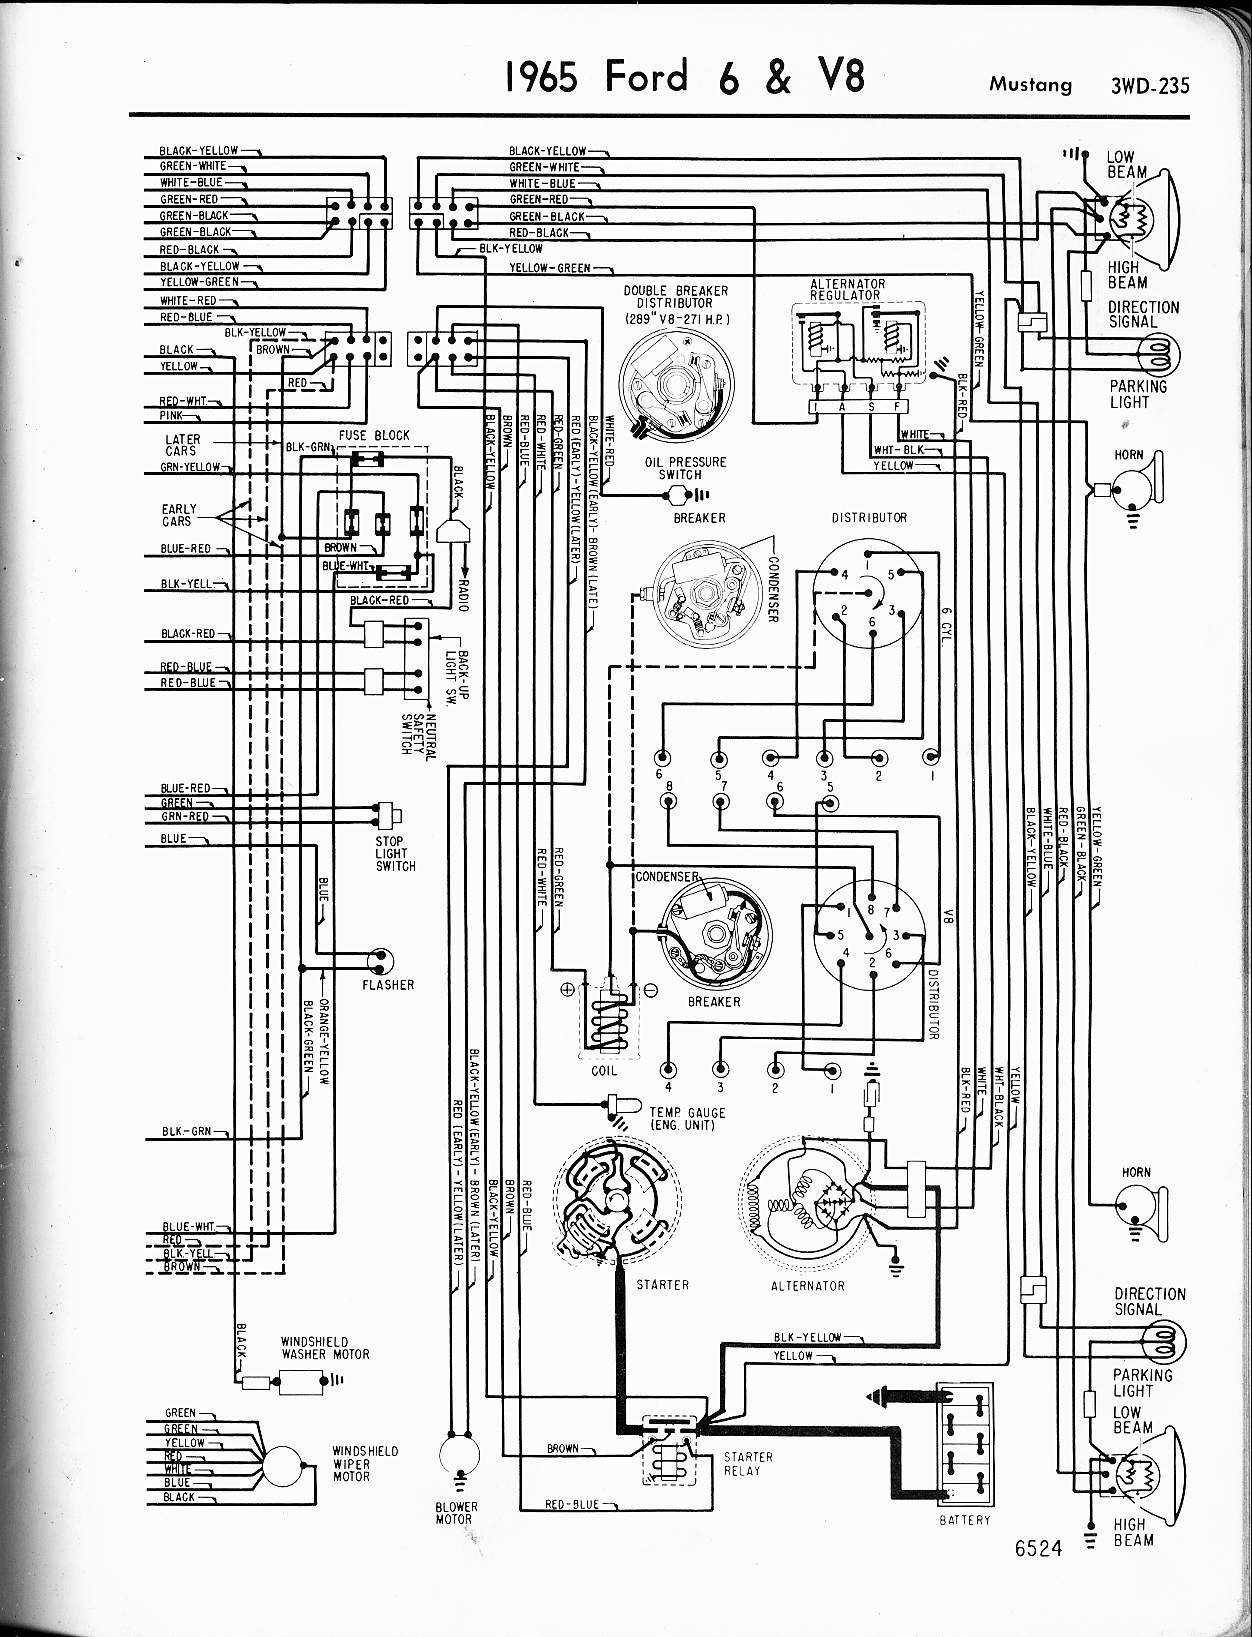 wiring diagrams , delco remy alternator wiring schematic , 325i water  pump wiring diagram , tundra fuse box , toyota wiring harness connector  11428